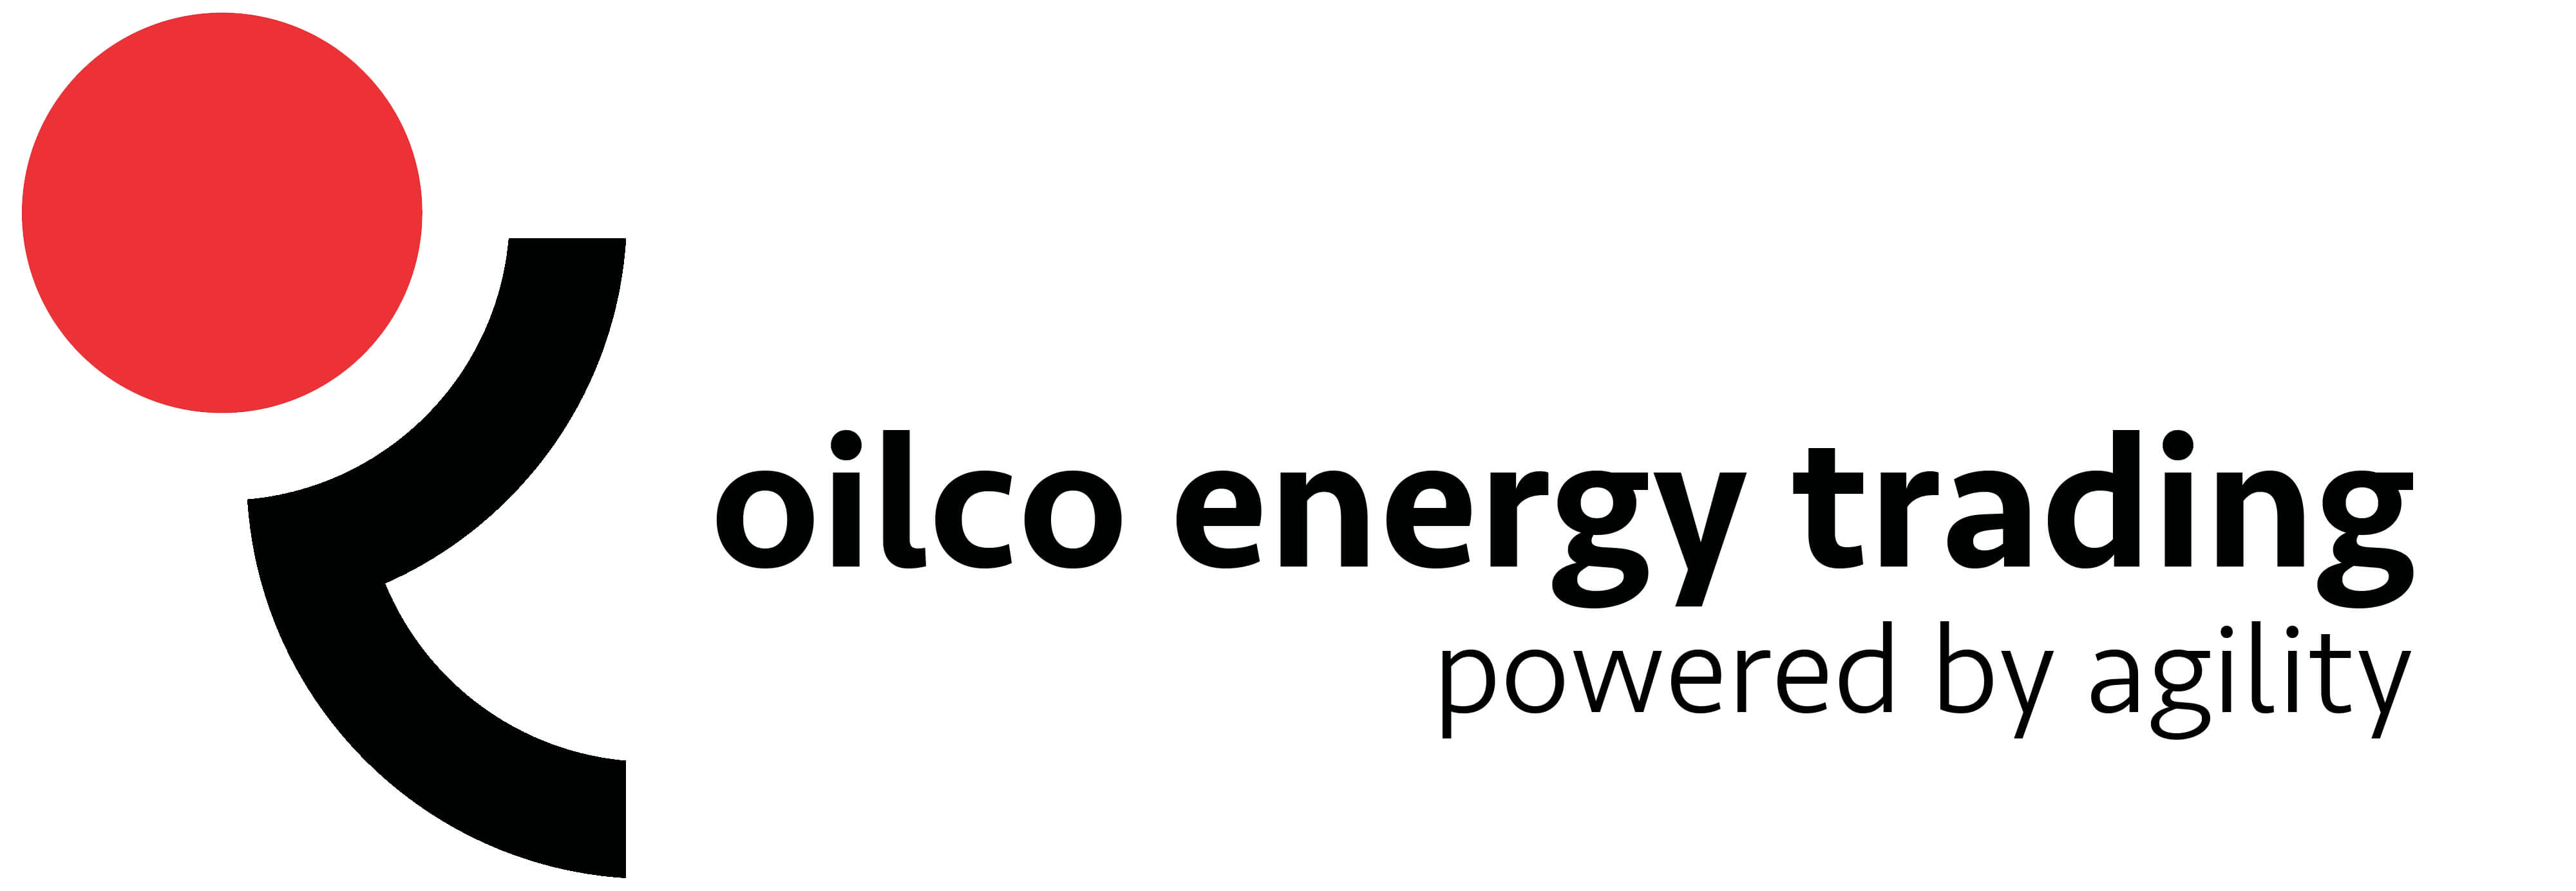 oilco by agility